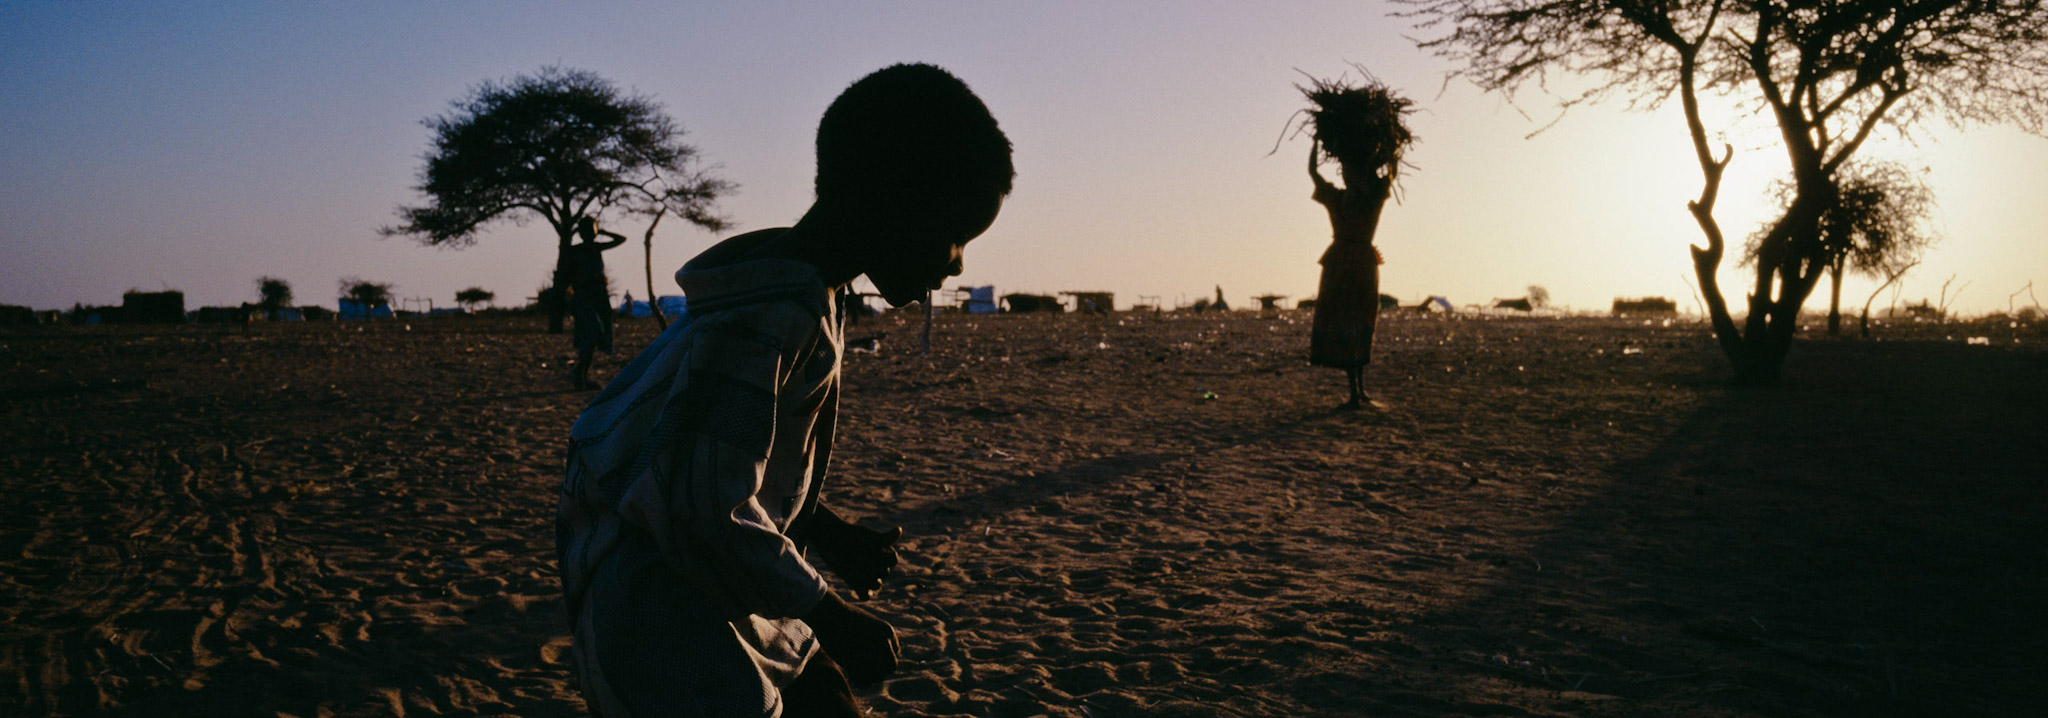 Silhouette of a child crosses in front of the camera with a silhouette of a woman carrying a bundle on her head in the background (Darfur, Sudan)